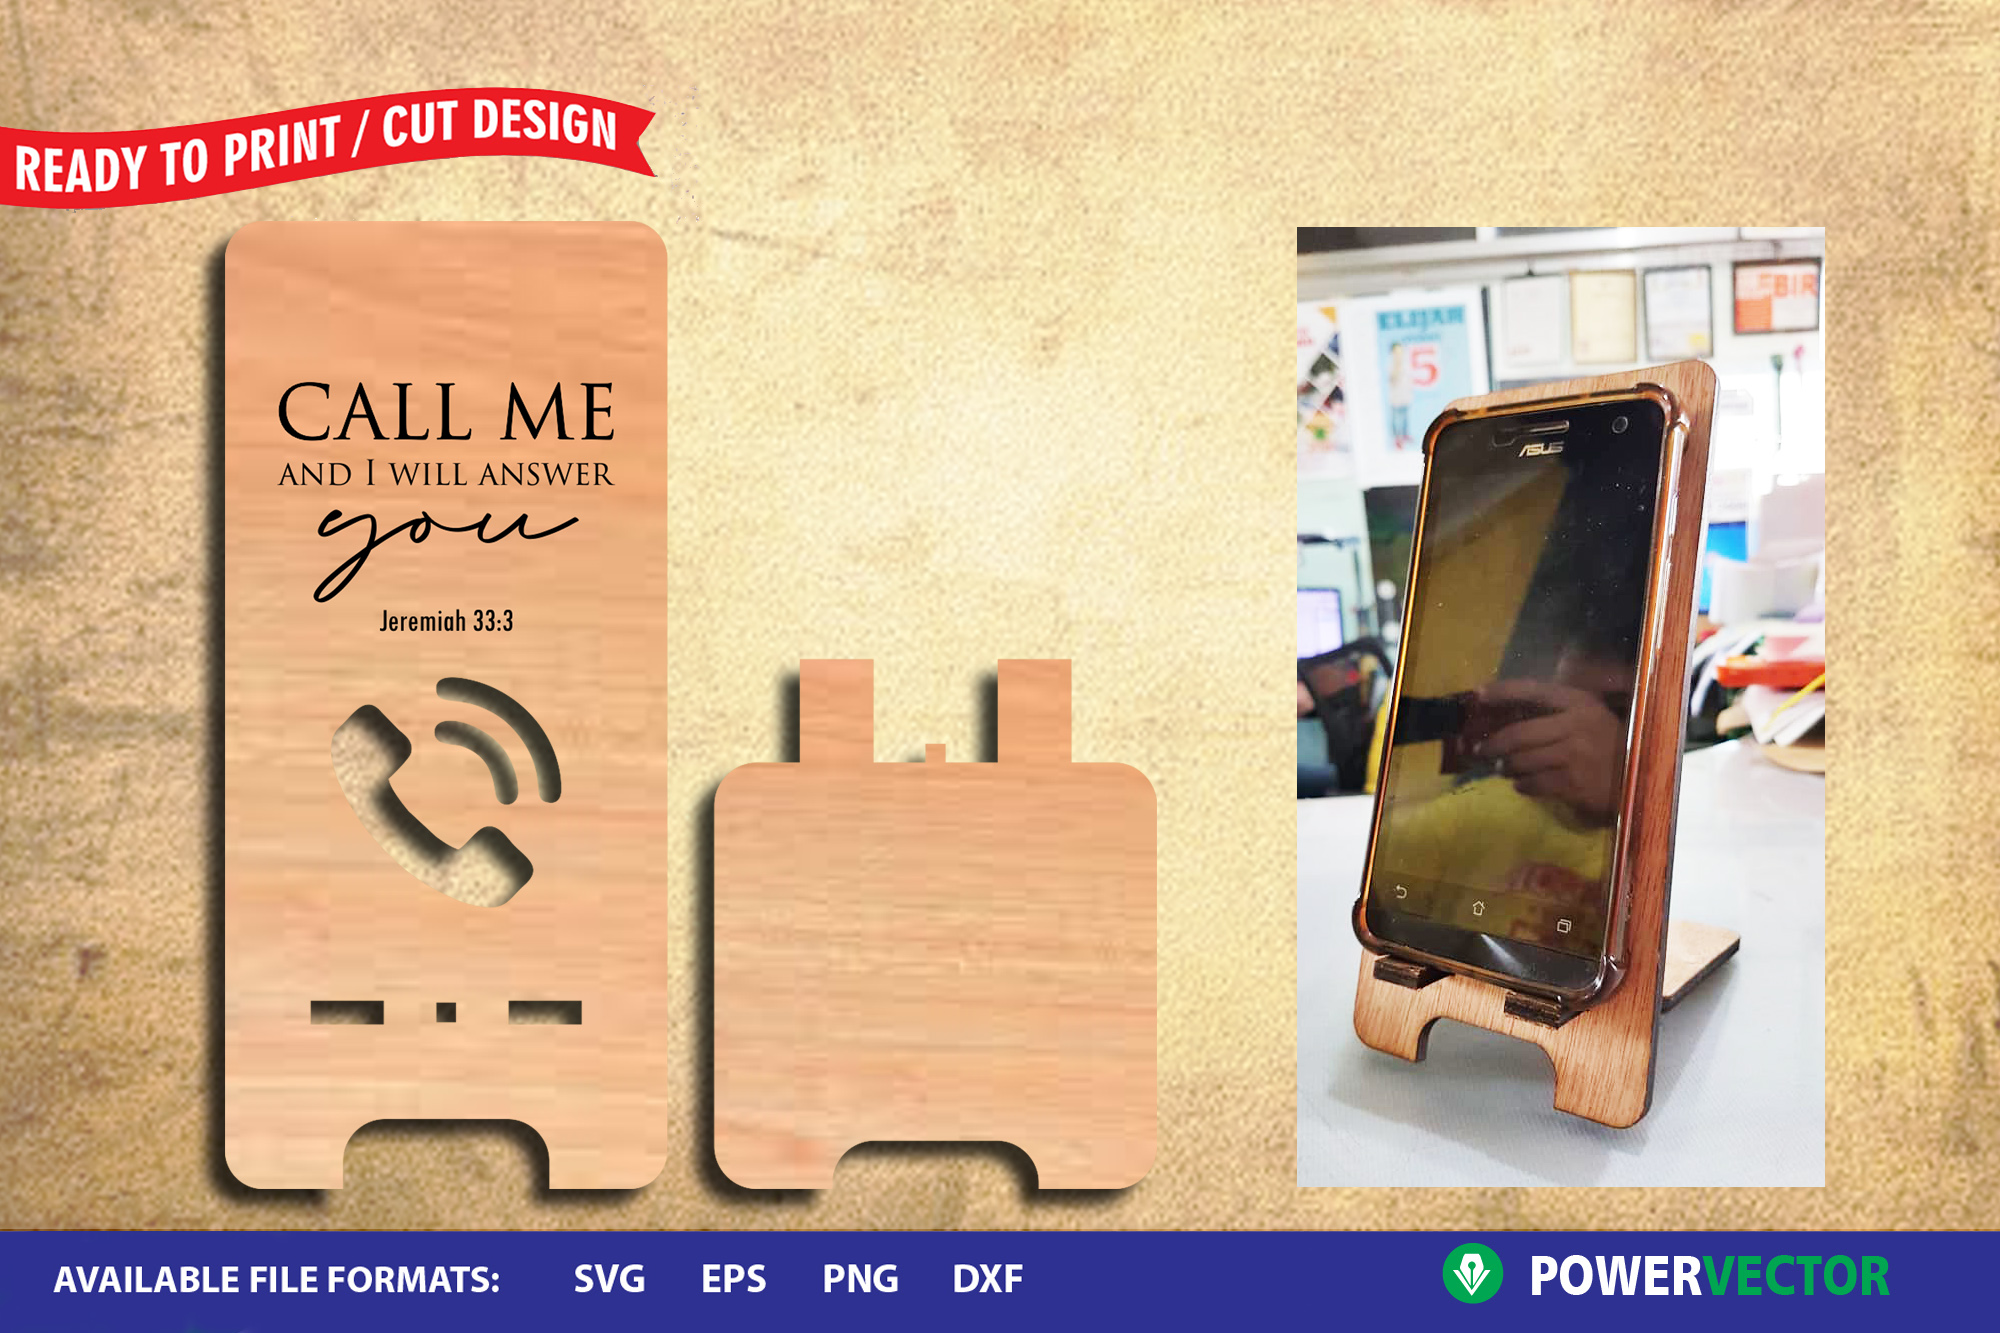 Download Free Cellphone Stand Template For Laser Graphic By Powervector for Cricut Explore, Silhouette and other cutting machines.